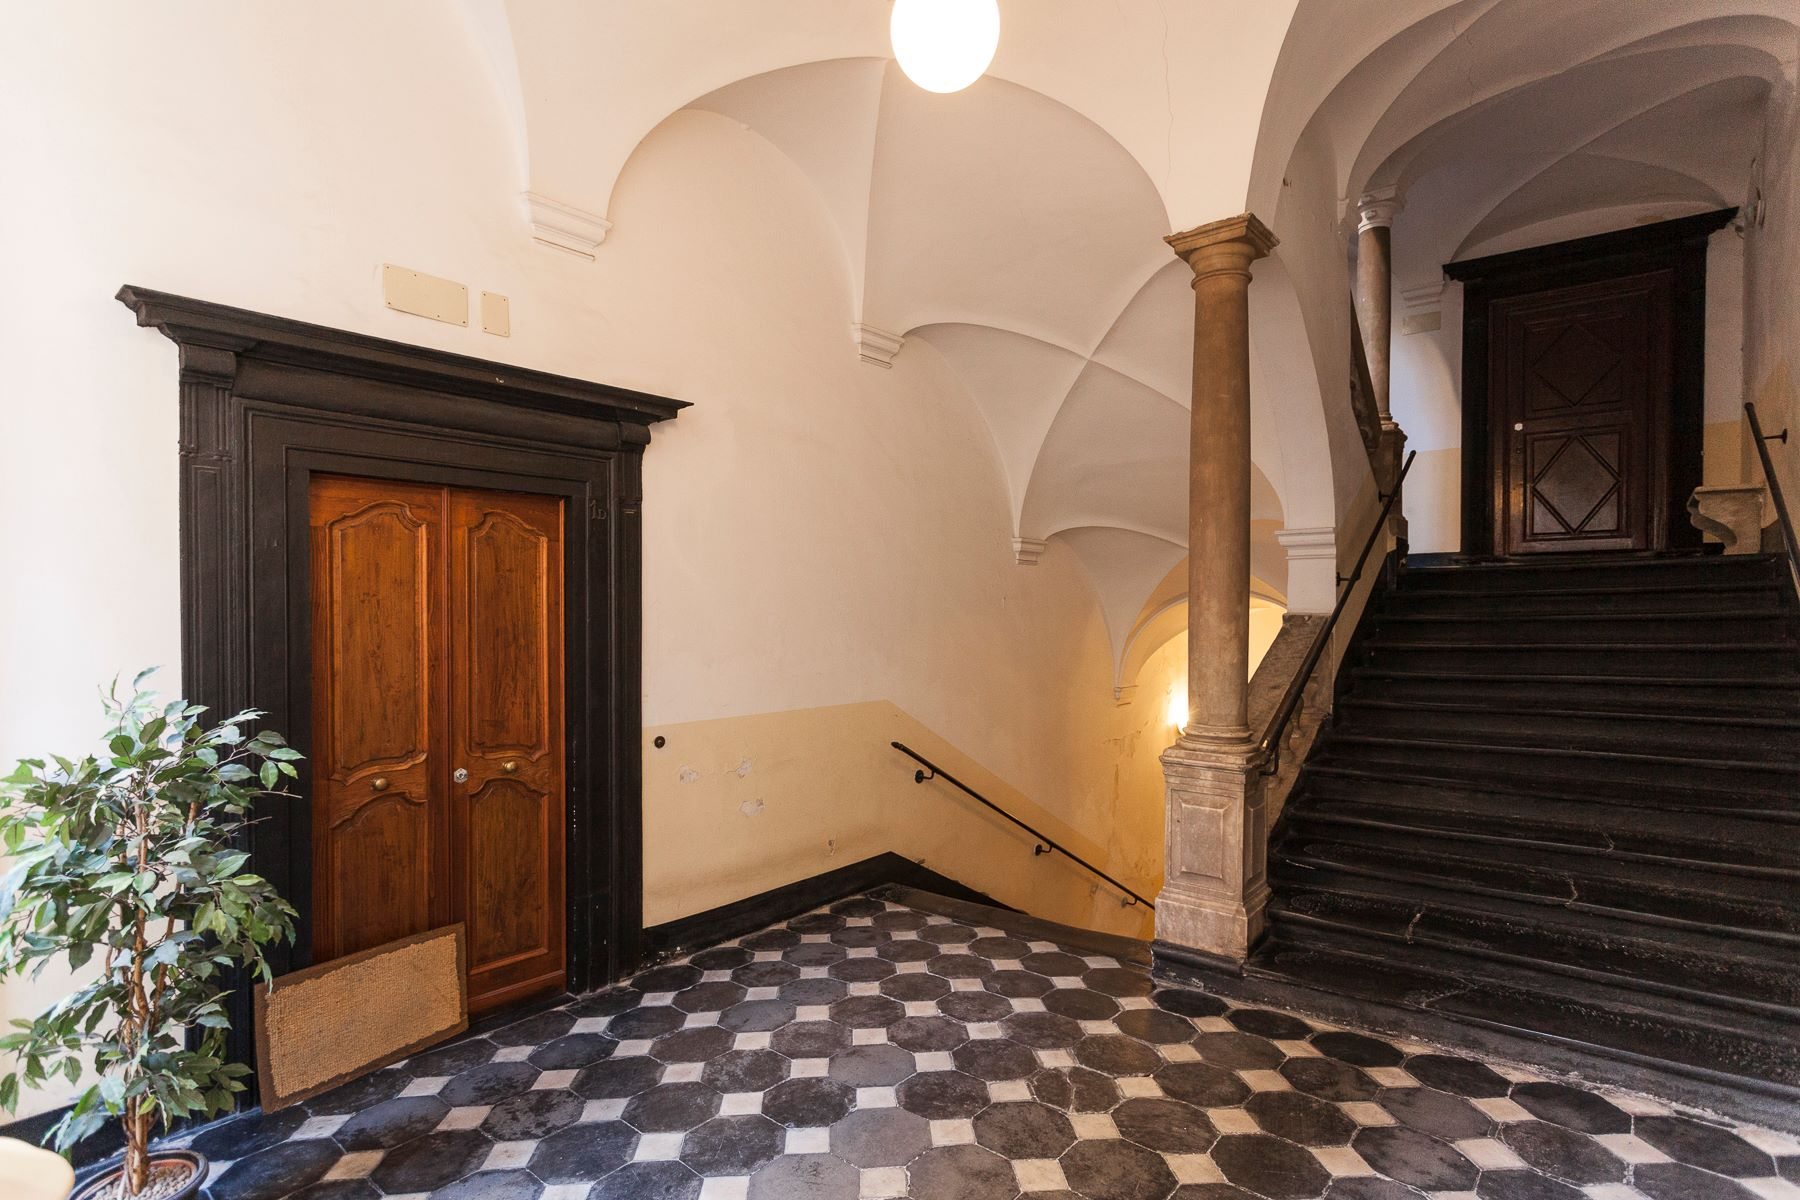 Additional photo for property listing at Highly representative apartment Piazza Ferretto Genova, Genoa 16123 Italien